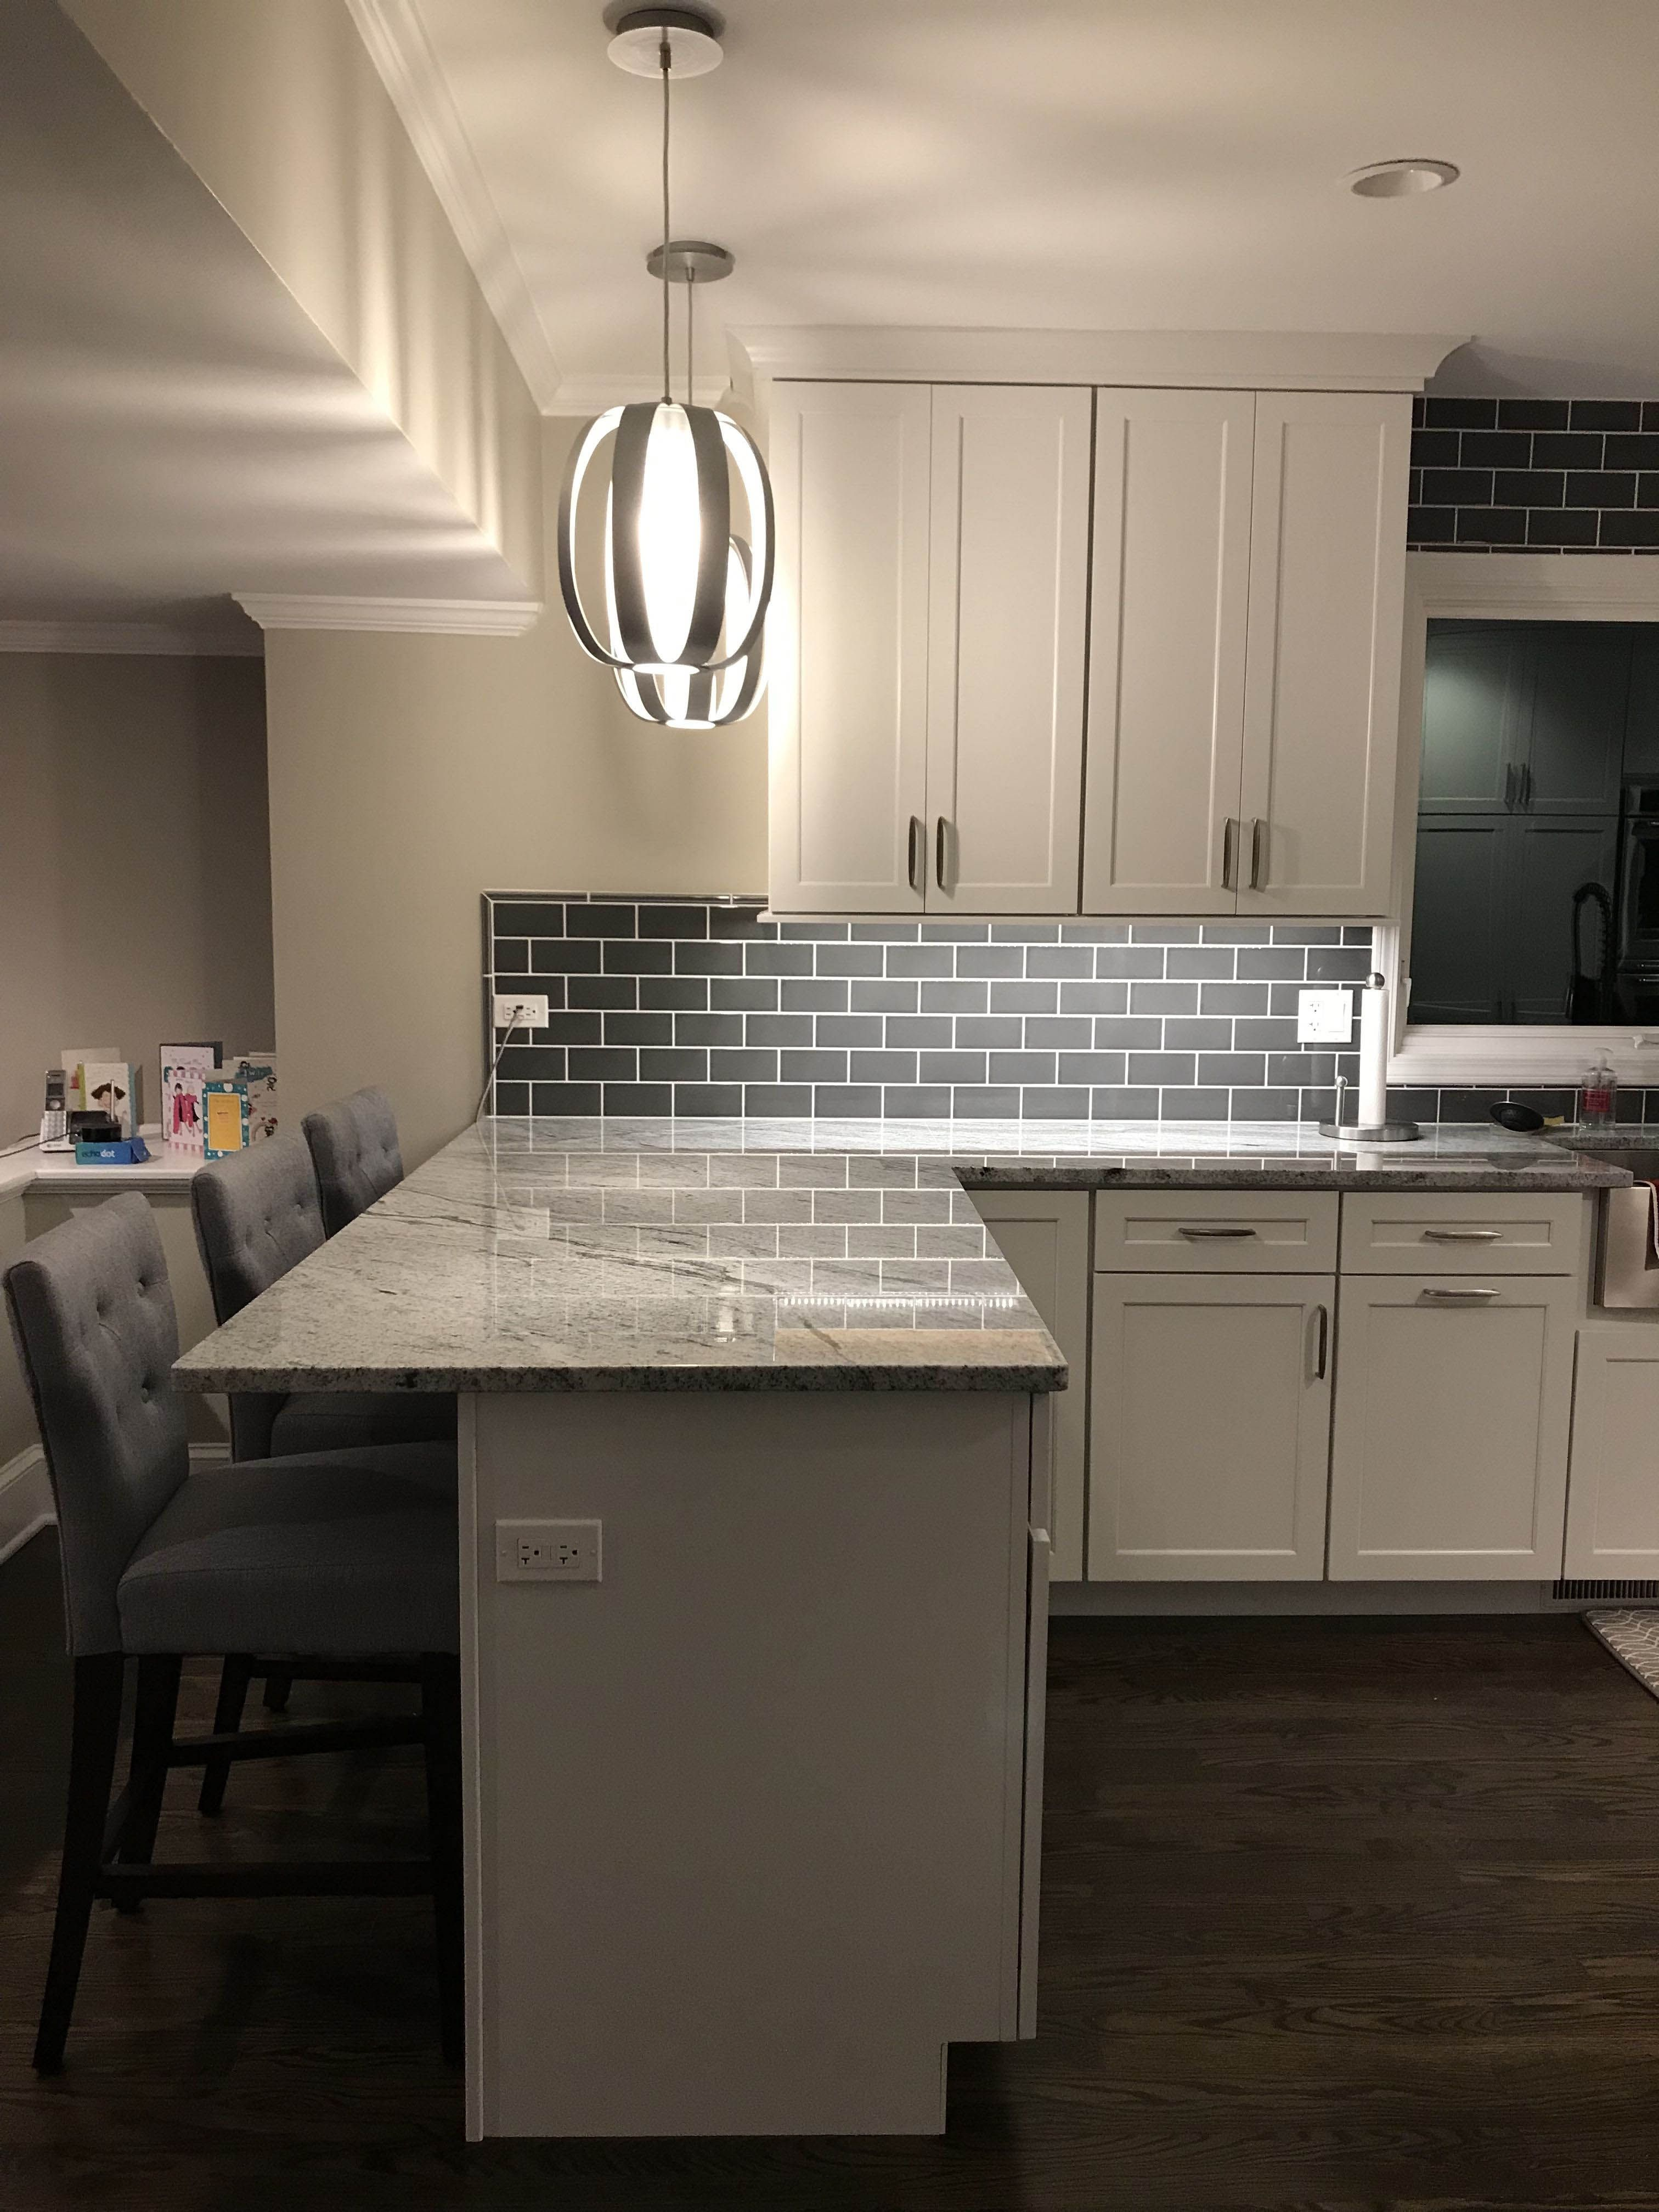 Ways To Style Gray Kitchen Cabinets Kitchen Remodel Layout White Kitchen Remodeling Kitchen Remodel Small